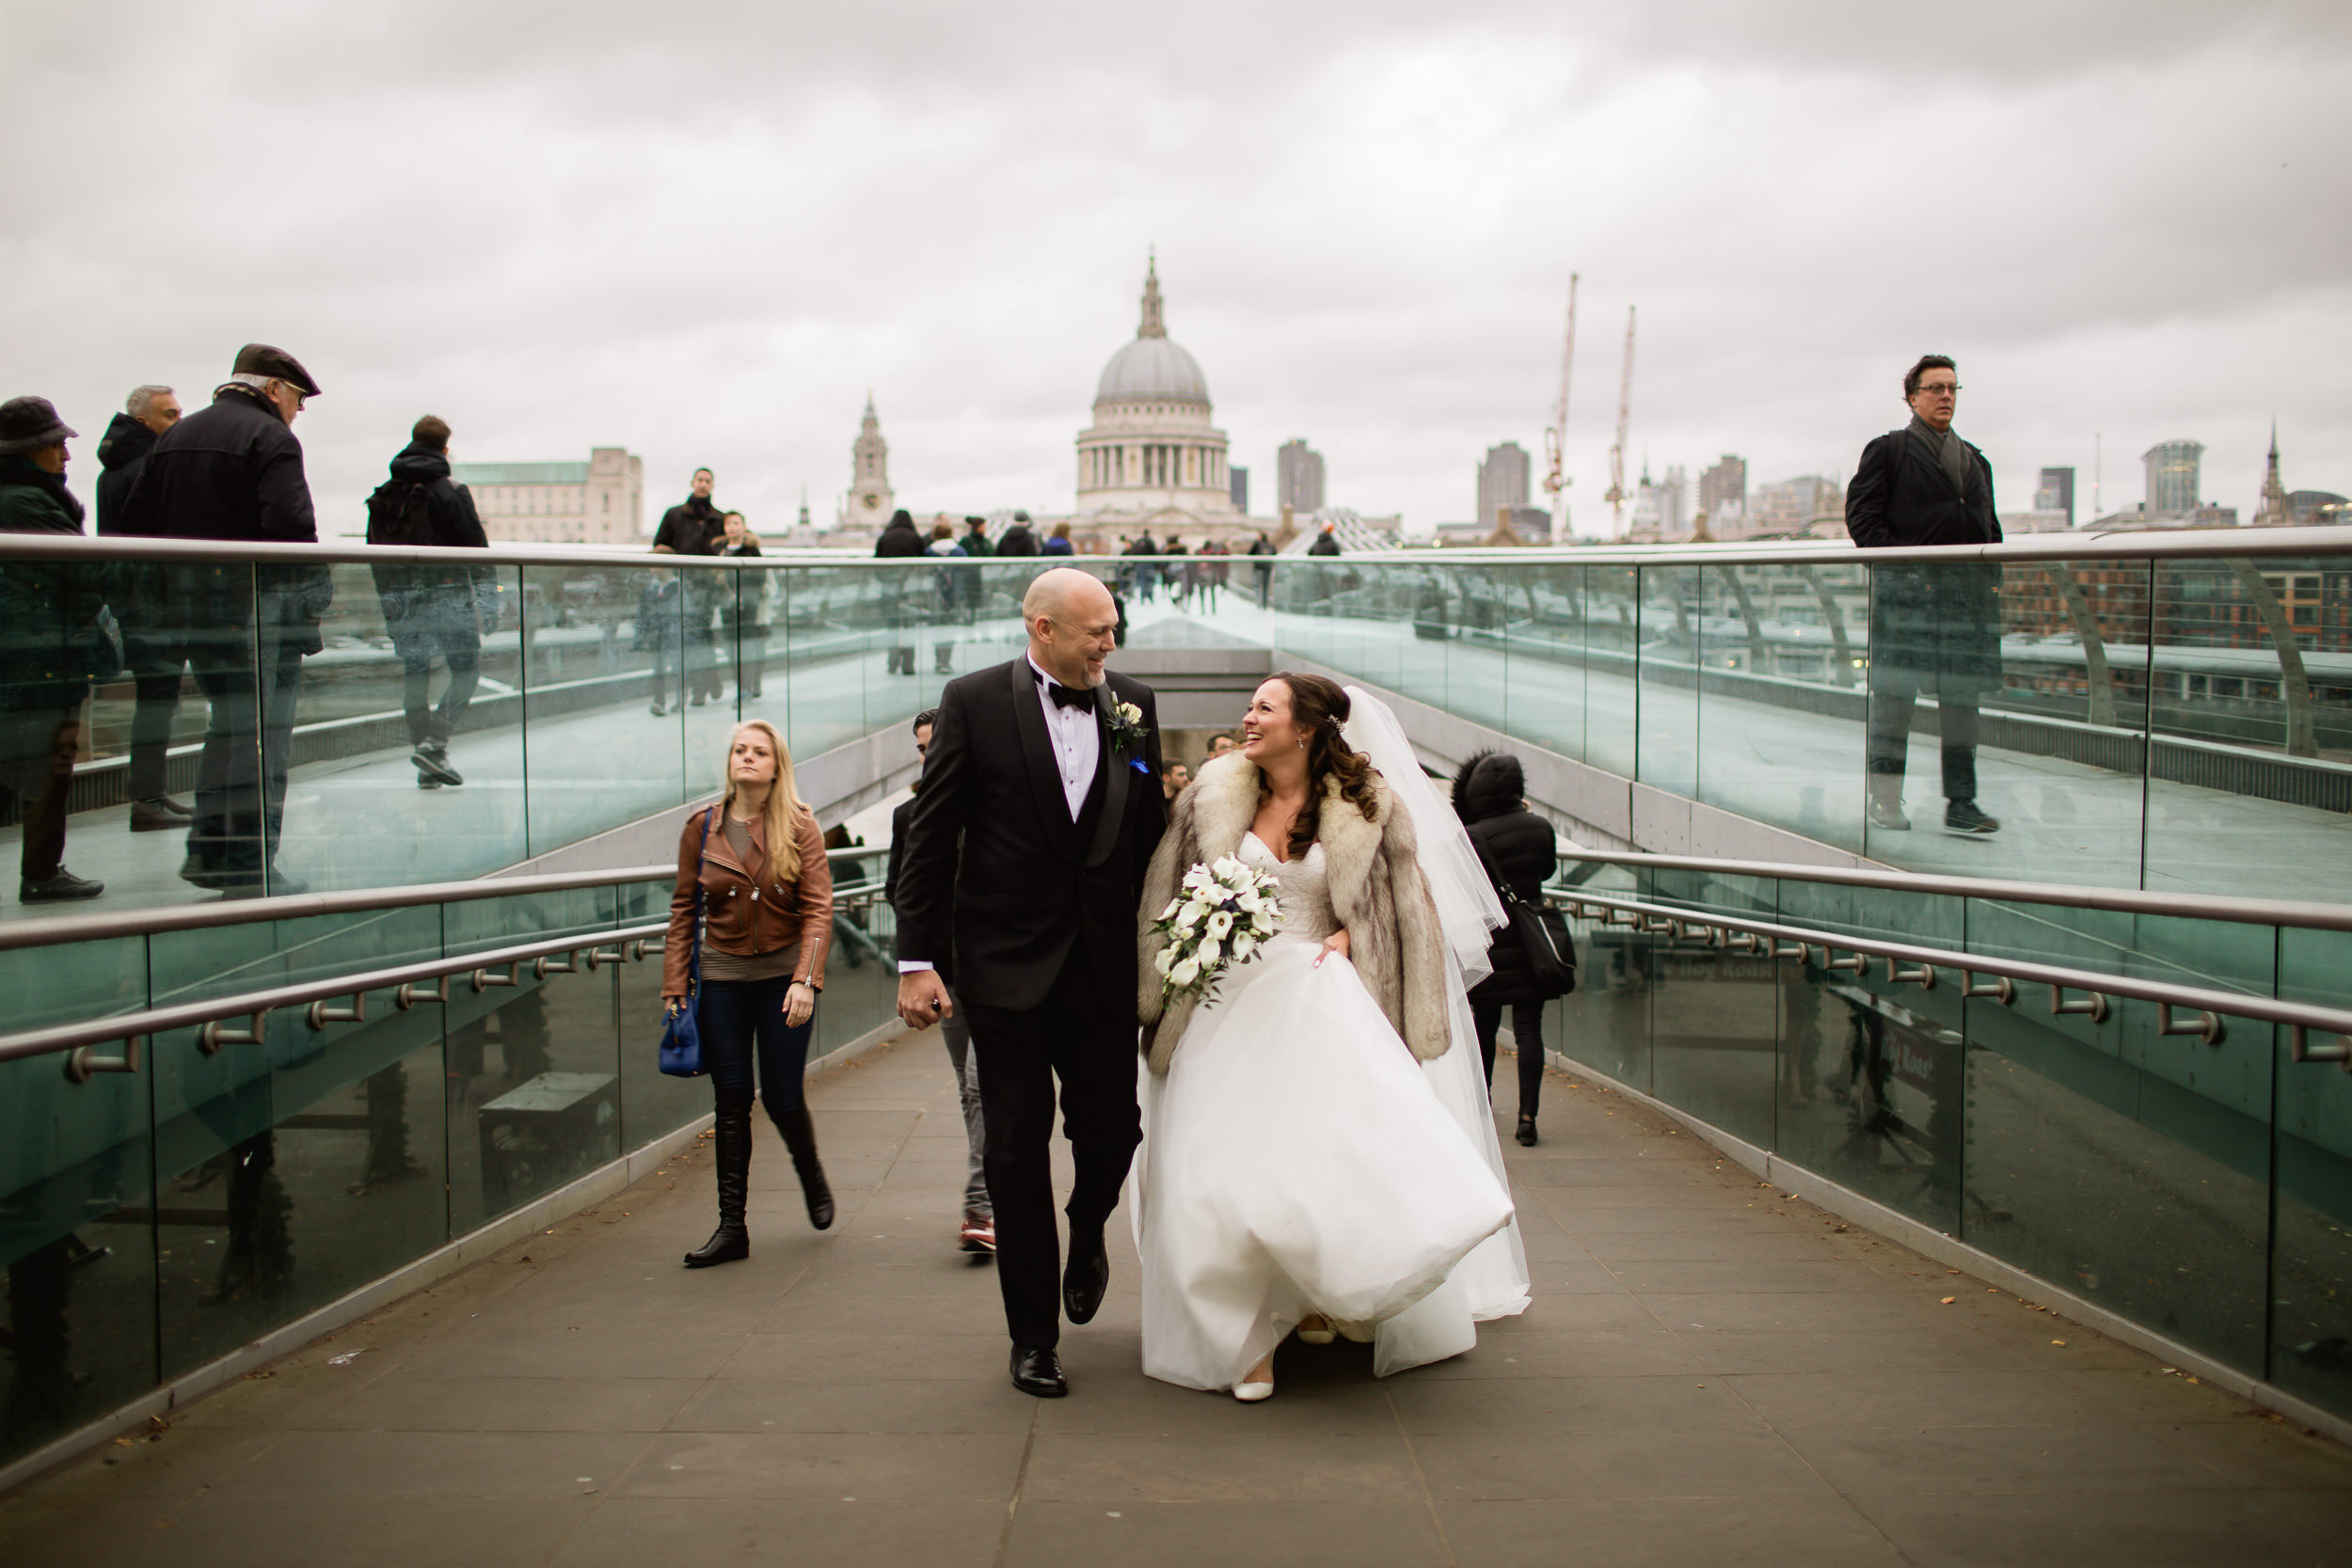 St Pauls London wedding - Wedding at St Pauls - Mondrain London wedding